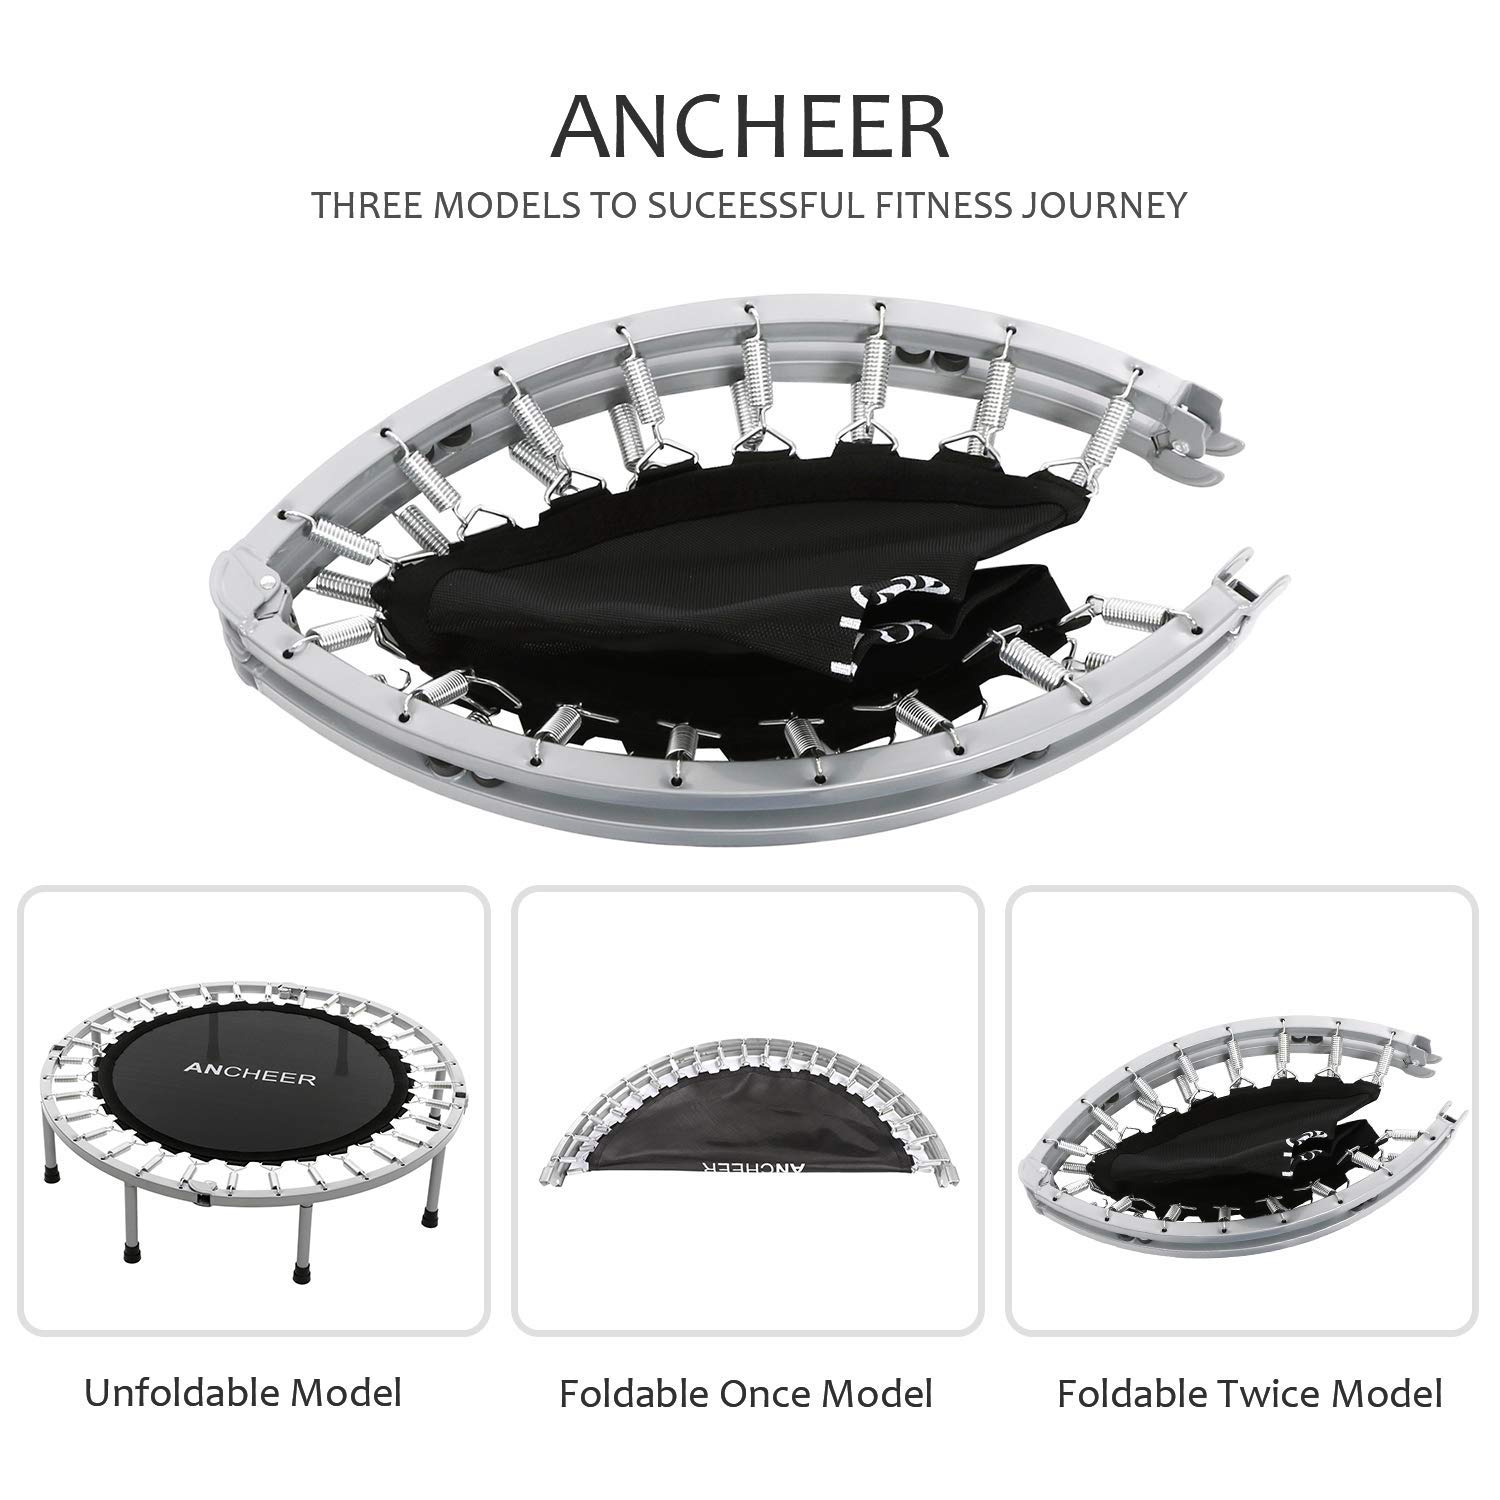 ANCHEER Max Load 220lbs Rebounder Trampoline with Safety Pad for Indoor Garden Workout Cardio Training (2 Sizes: 38 inch/40 inch, Two Modes: Folding/Not Folding) (Renewed) by ANCHEER (Image #3)